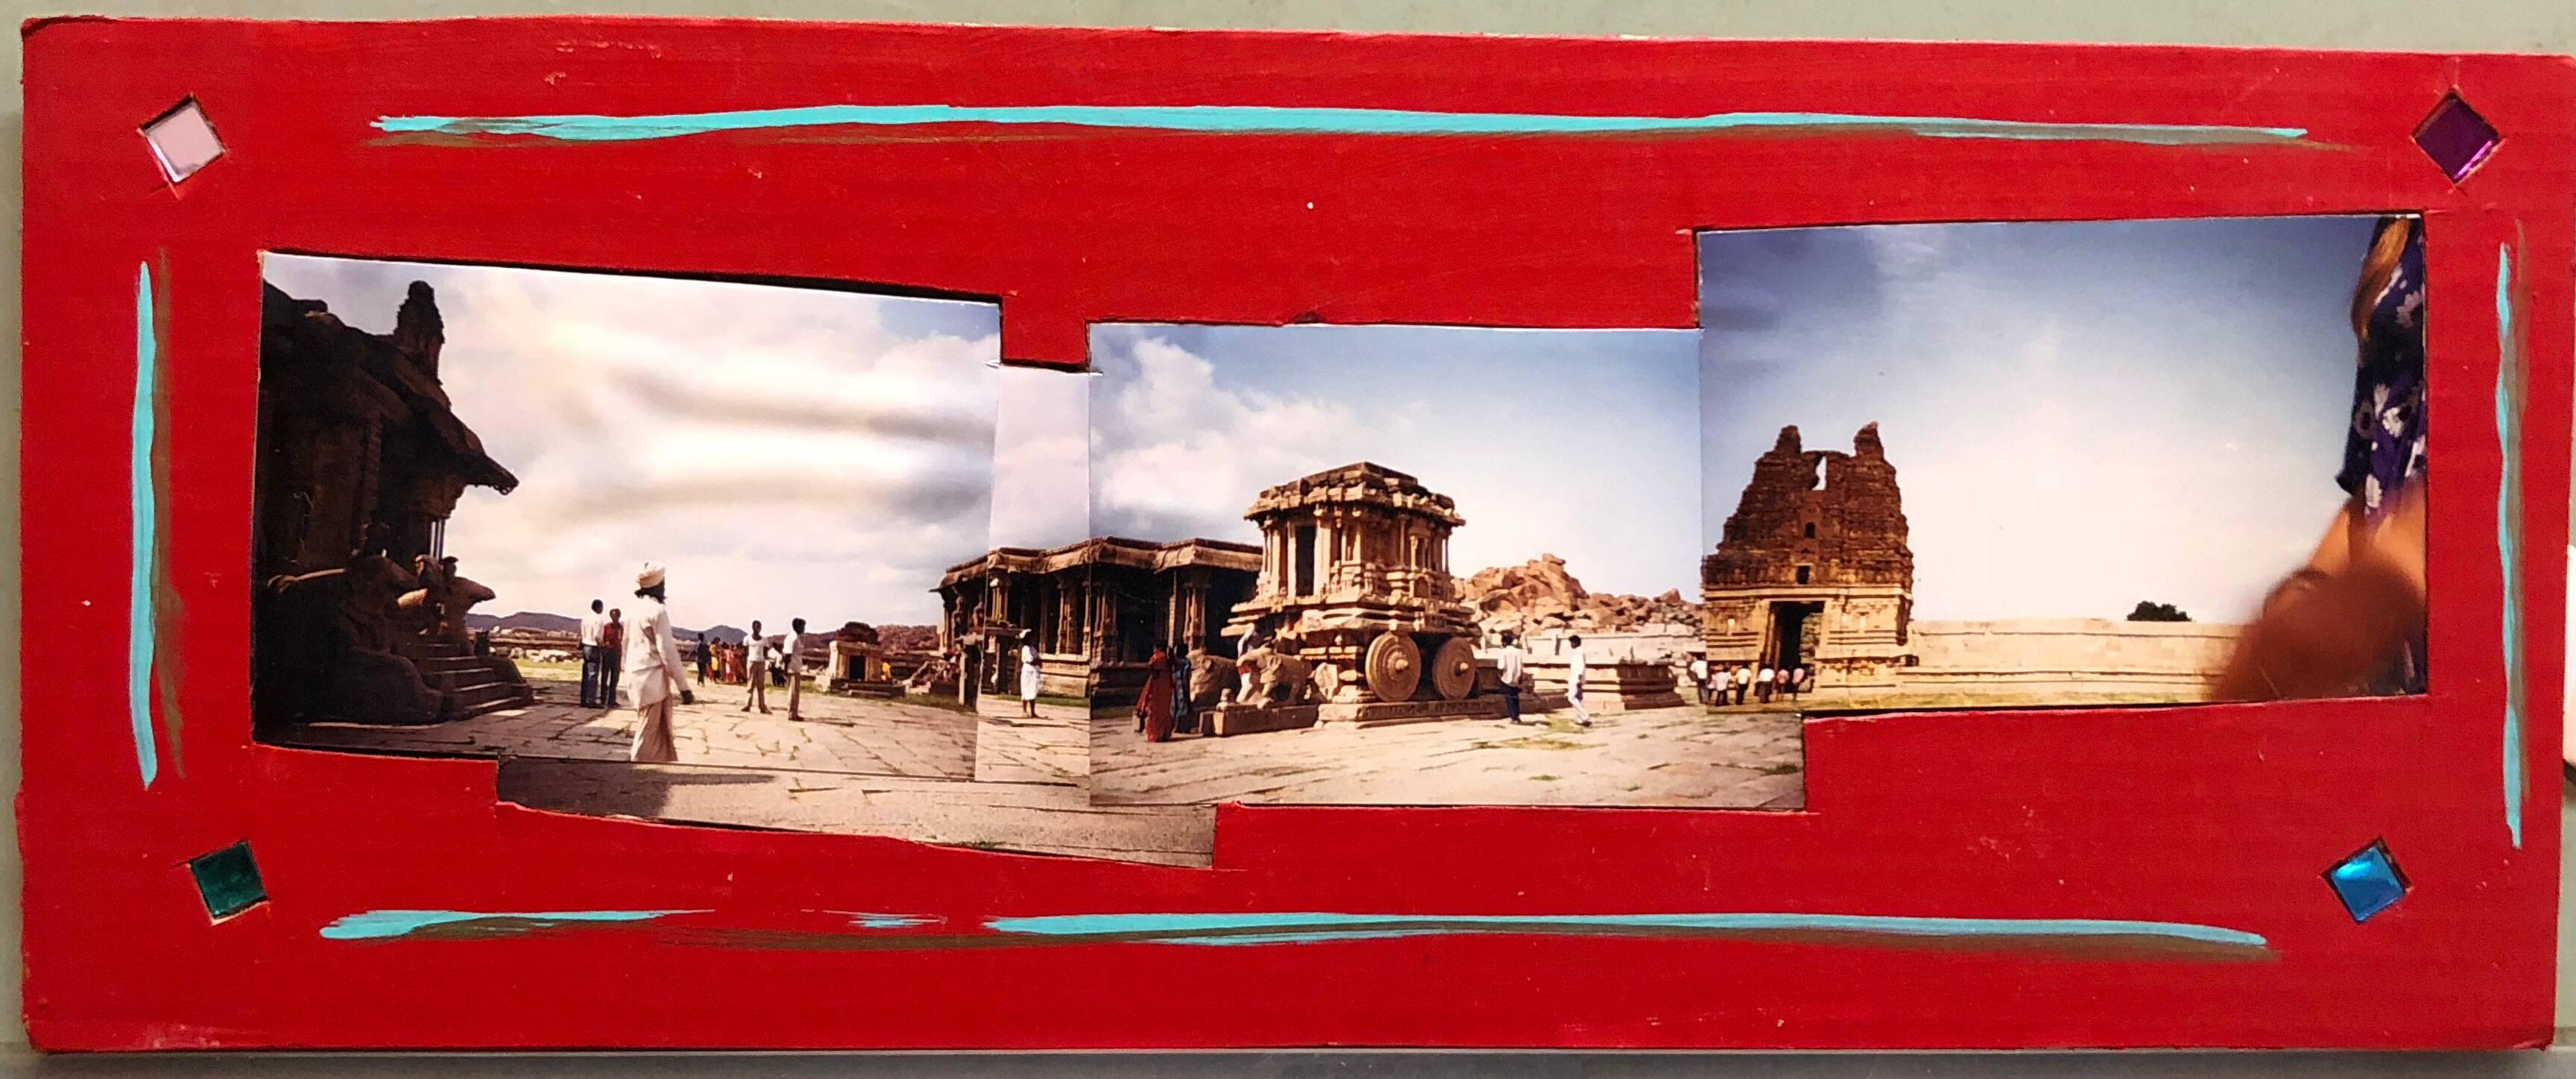 Tourists Hampi, India, 1992, Photo Prints on Cardboard, Collage, Mirror Insets